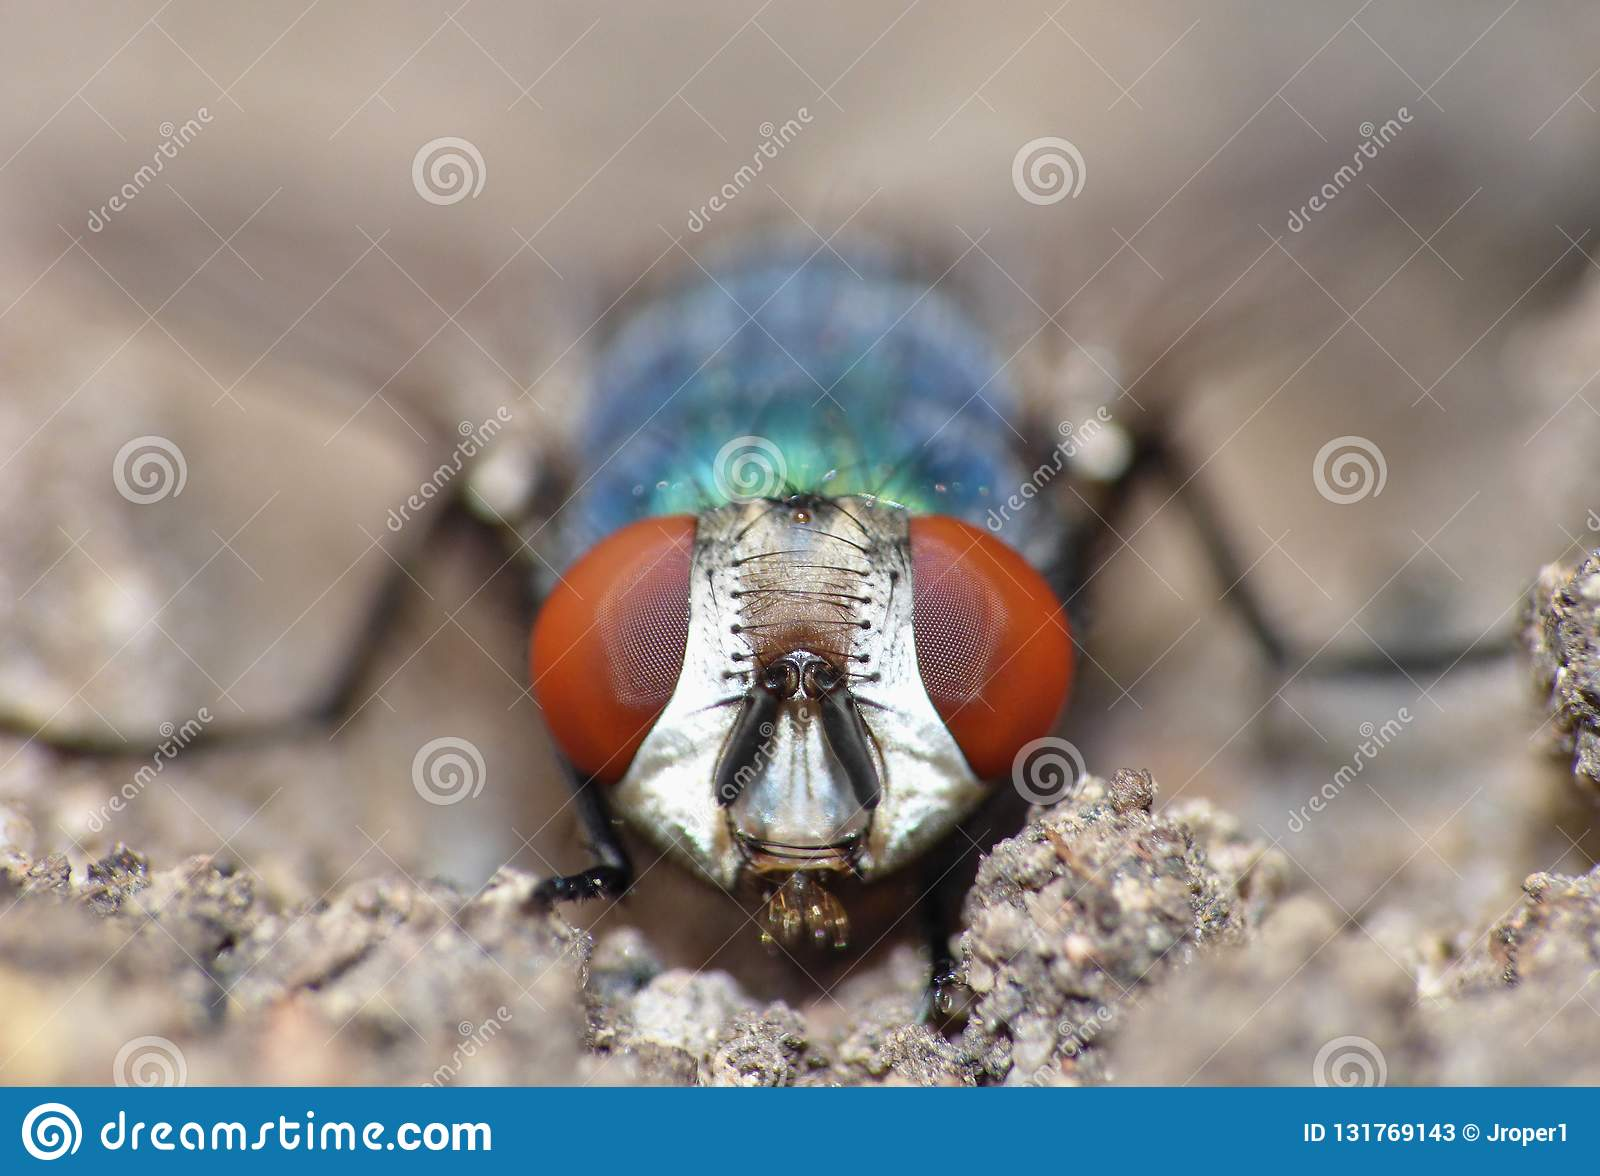 Close up macro shot of a Blowfly Green / Blue in the garden, photo taken in the United Kingdom